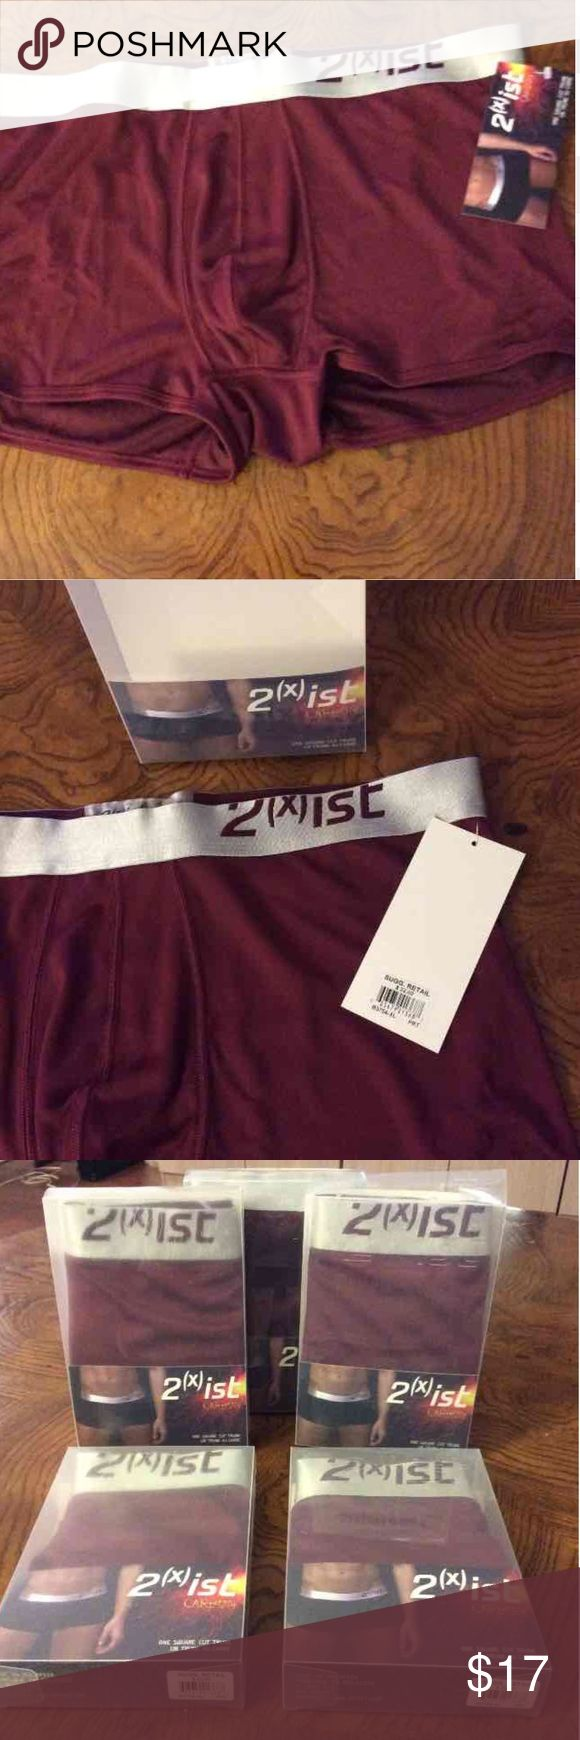 2xist men's square trunk Size xl. Brand new in box. Never worn. Maroon color. $22 each retail. 2xist Underwear & Socks Boxer Briefs